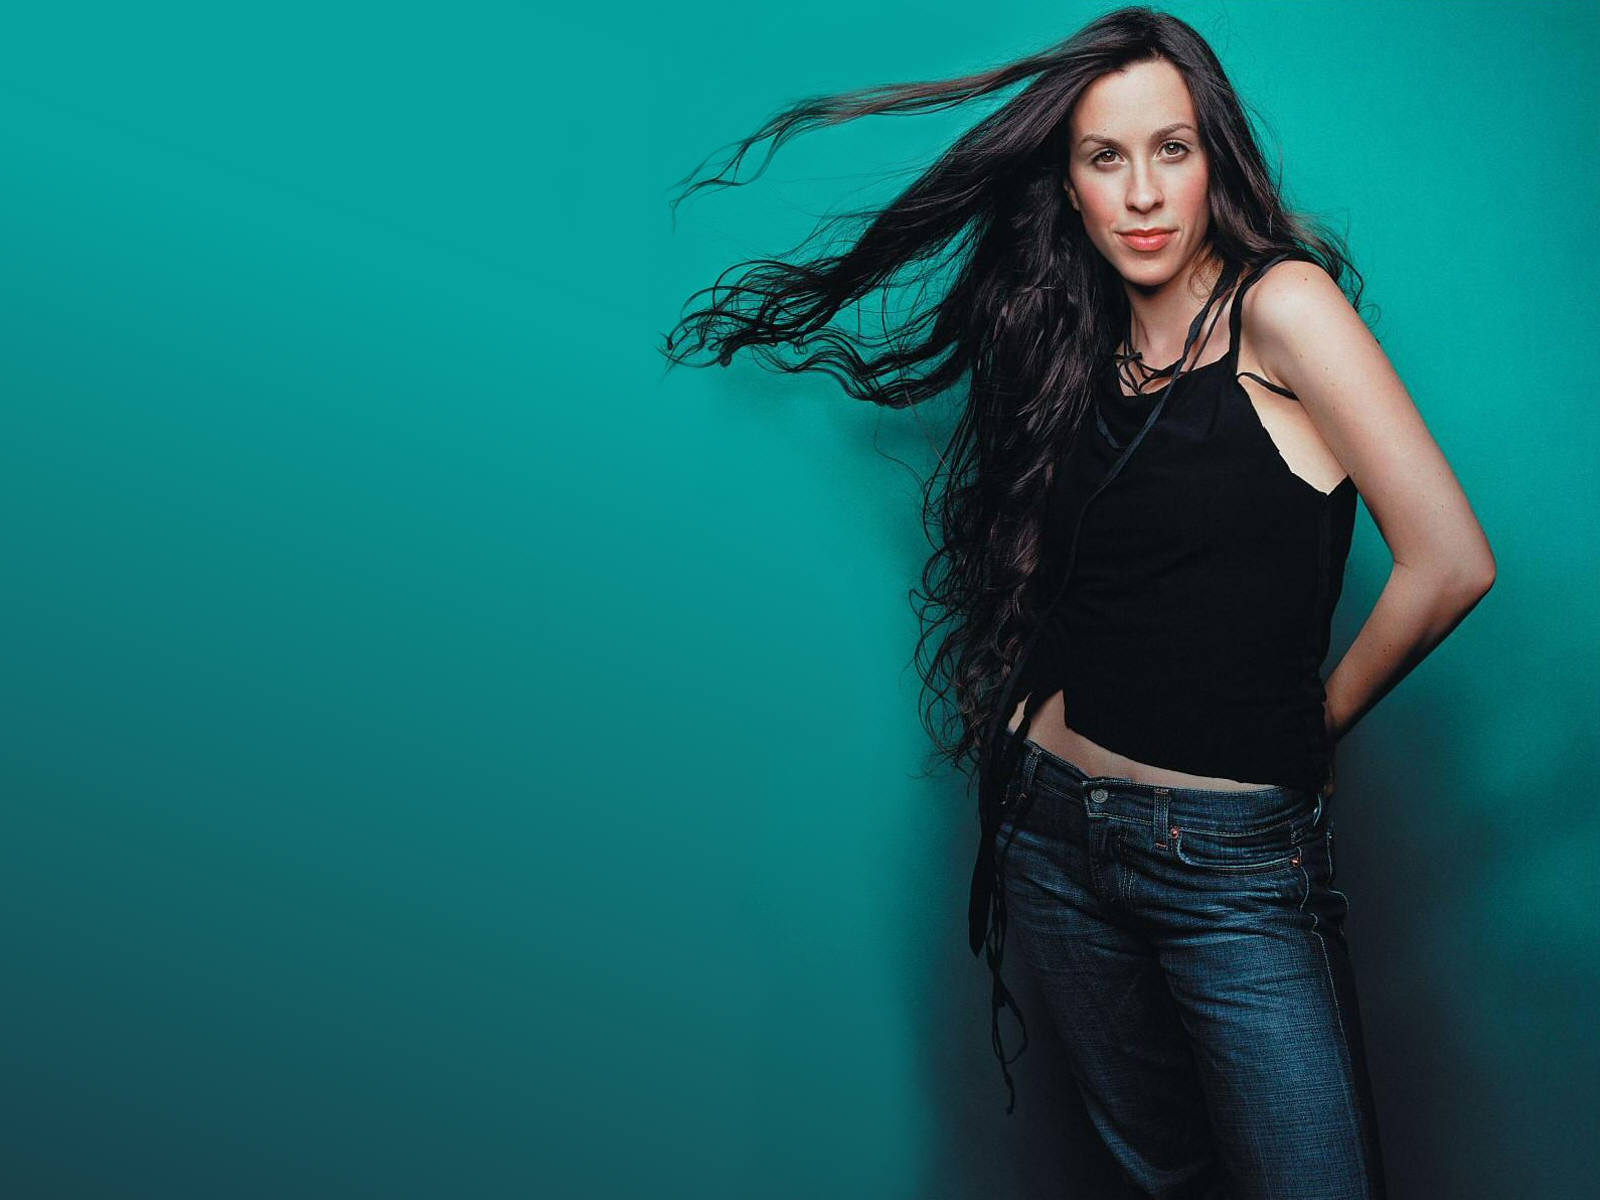 Full Hd Wallpaper Pack Free Download Alanis Morissette Wallpapers High Quality Download Free